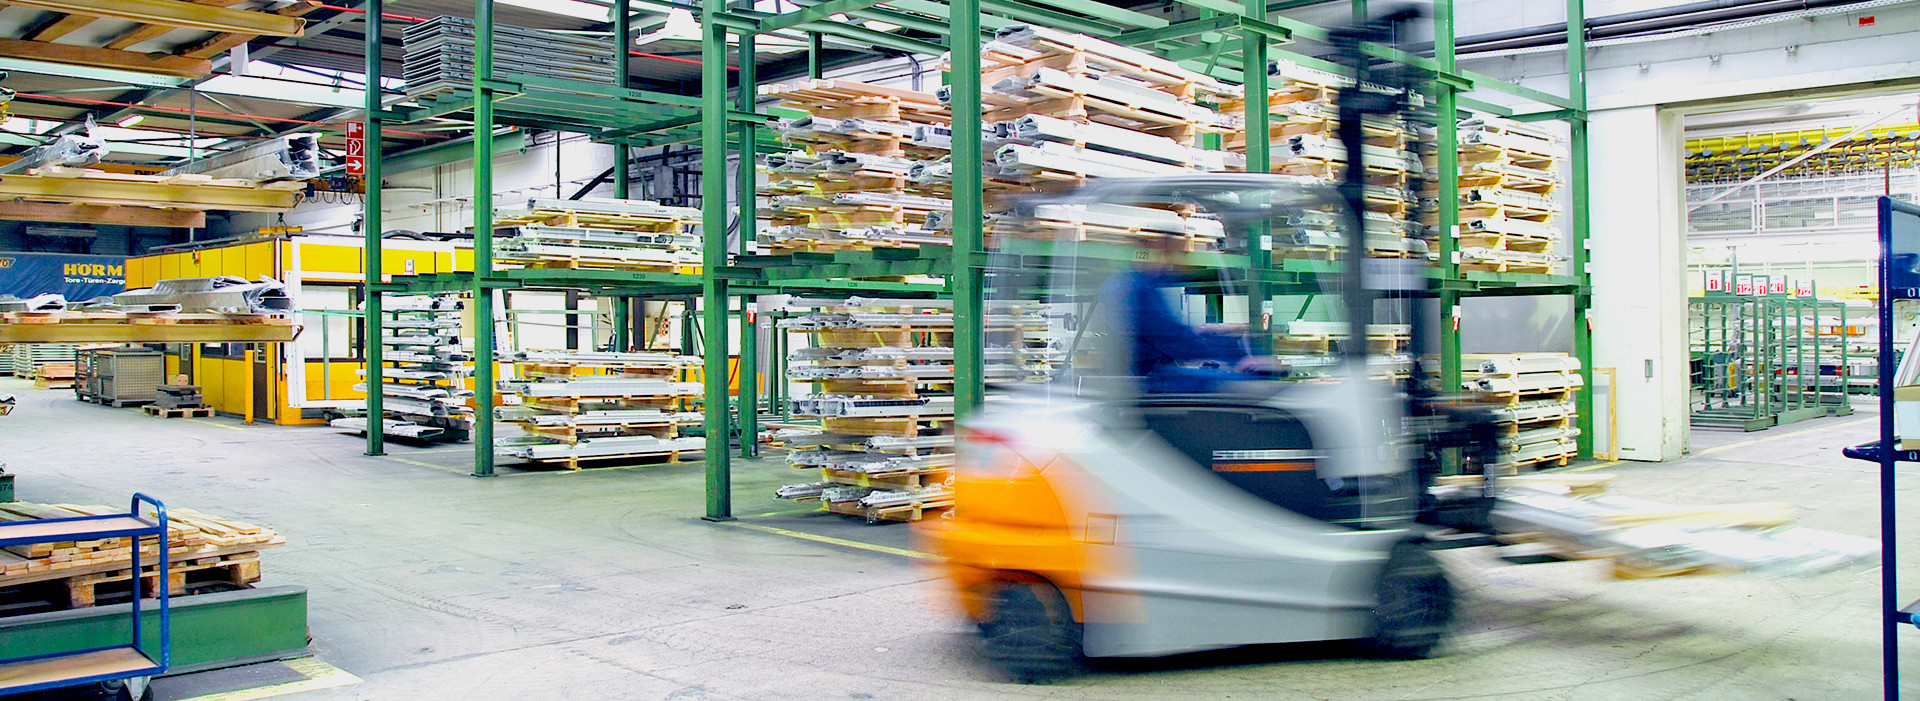 wms software: for a smooth warehouse workflow